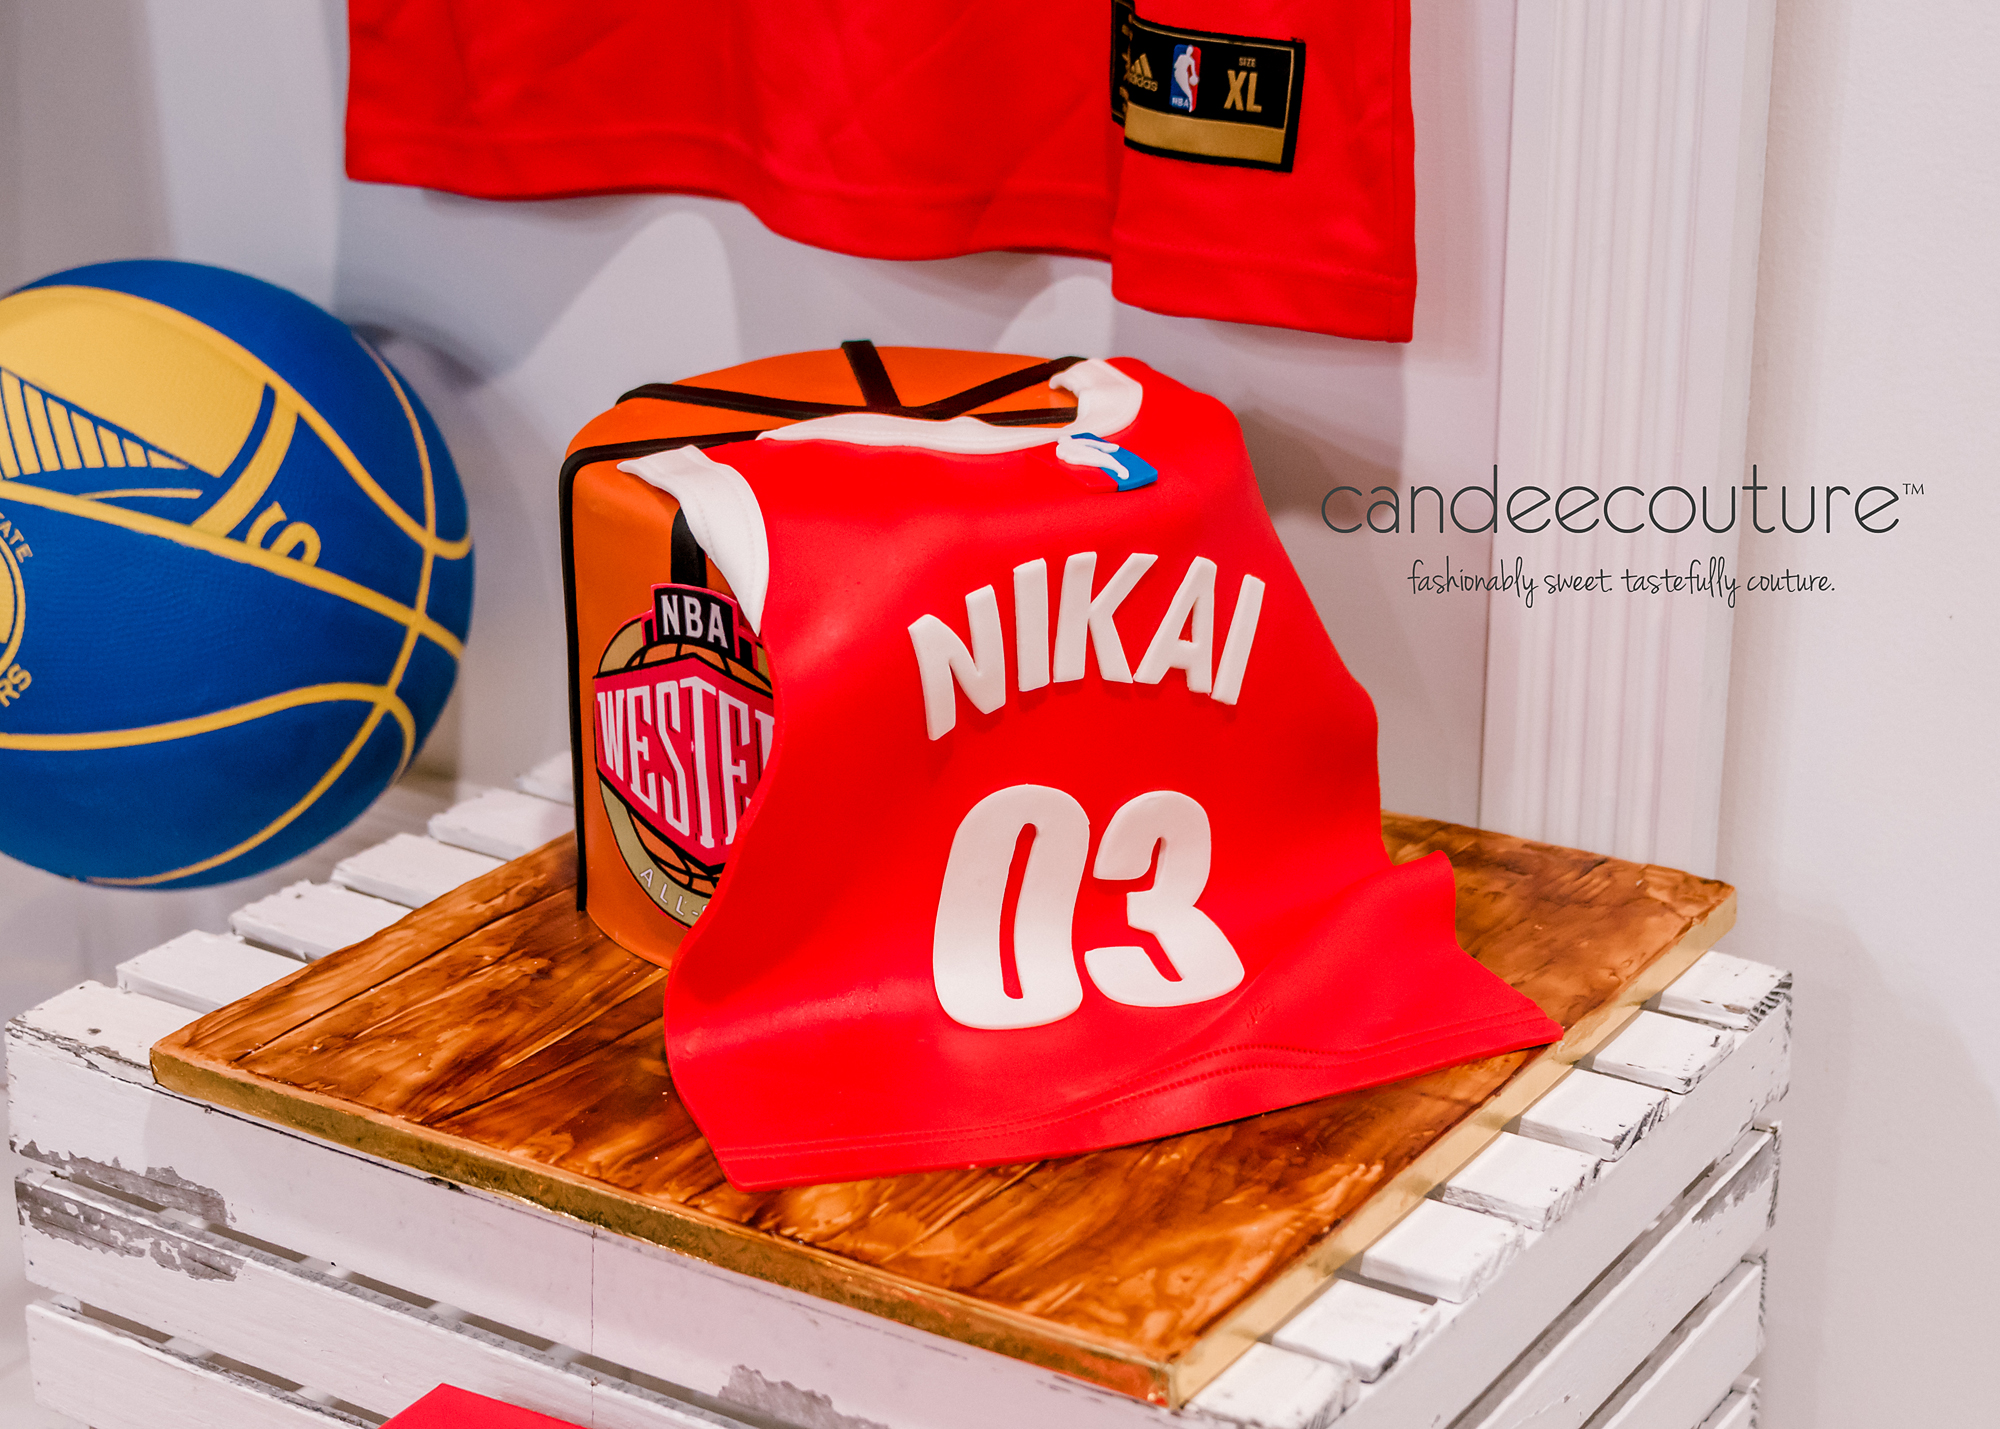 Basketball cake, NBA basketball cake, NBA All-star cake, western conference cake, NBA western conference cake, NBA western conference all-star cake, Dessert table, sweet table, nba theme table, nba all-star theme table, golden state warriors dessert table, warriors sweet table, nba themed party, golden state warriors party, nba all-star theme party, birthday, nba all-star theme, nba cake, basketball, basketball desserts